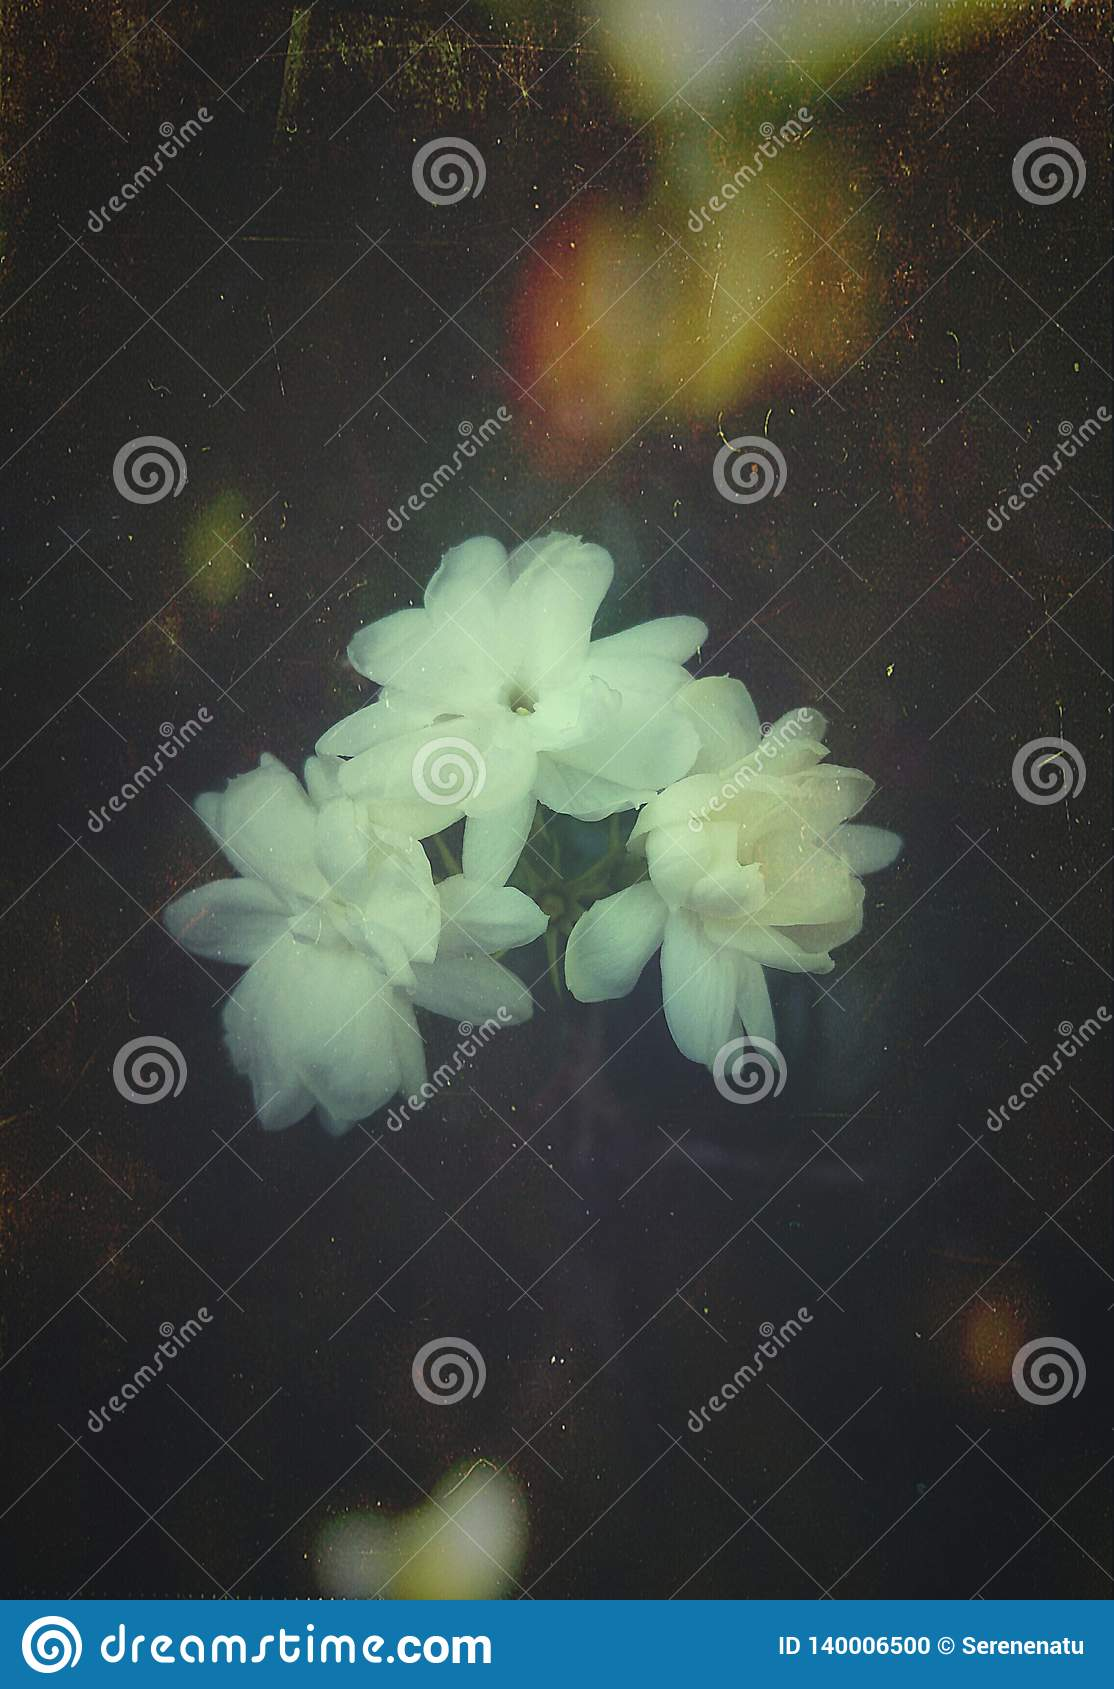 Beautiful Jasmine flowers of India with an artistic touch